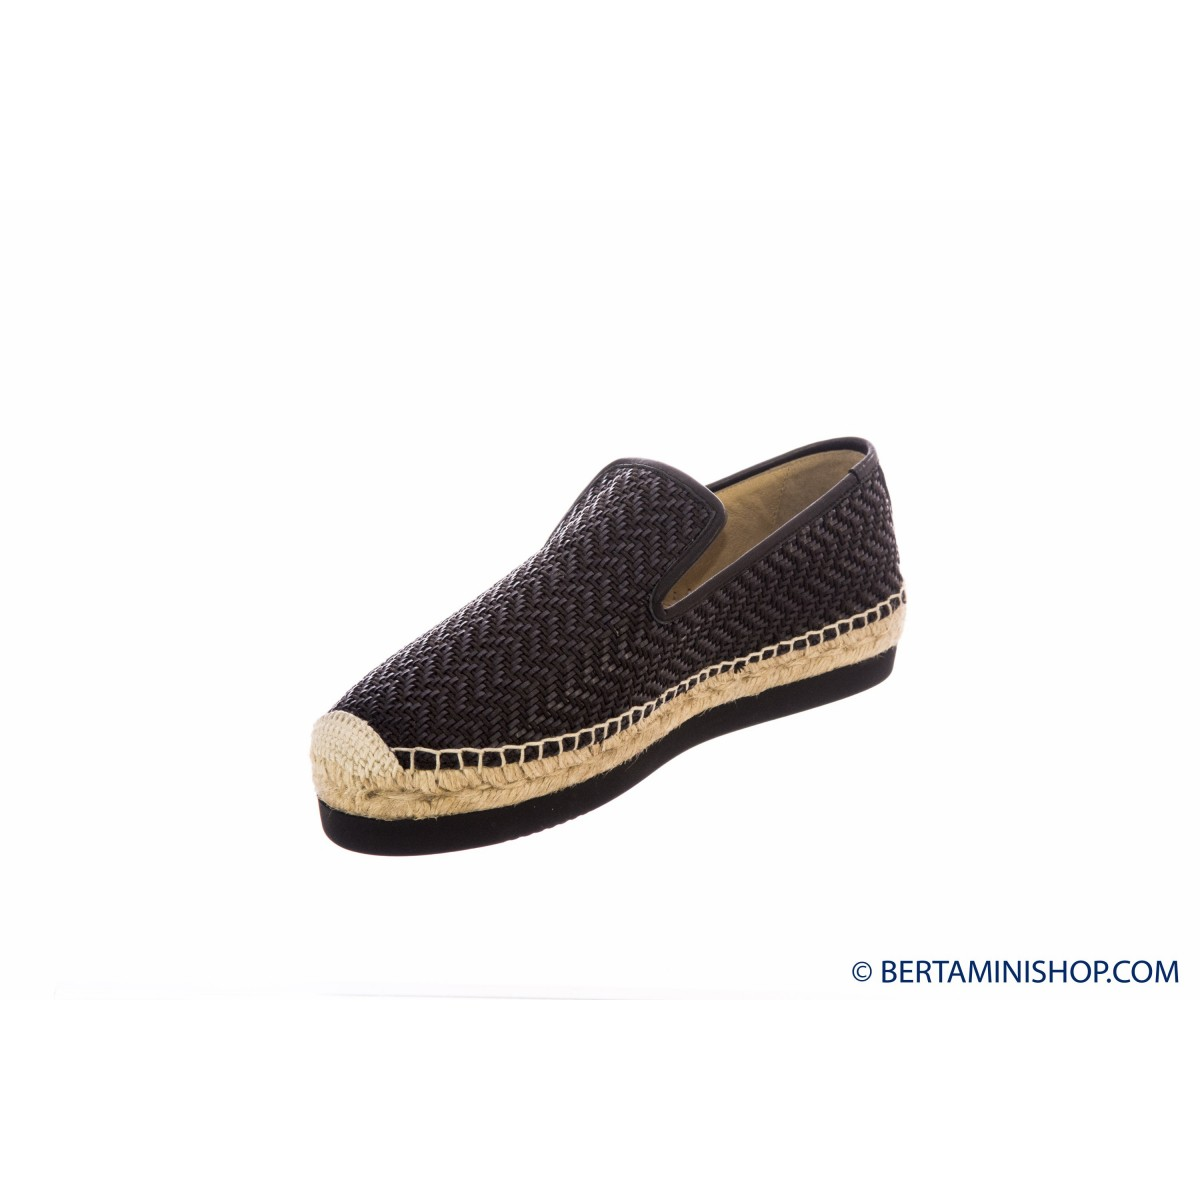 Scarpa Palomitas - Paola bl02 natural black leather